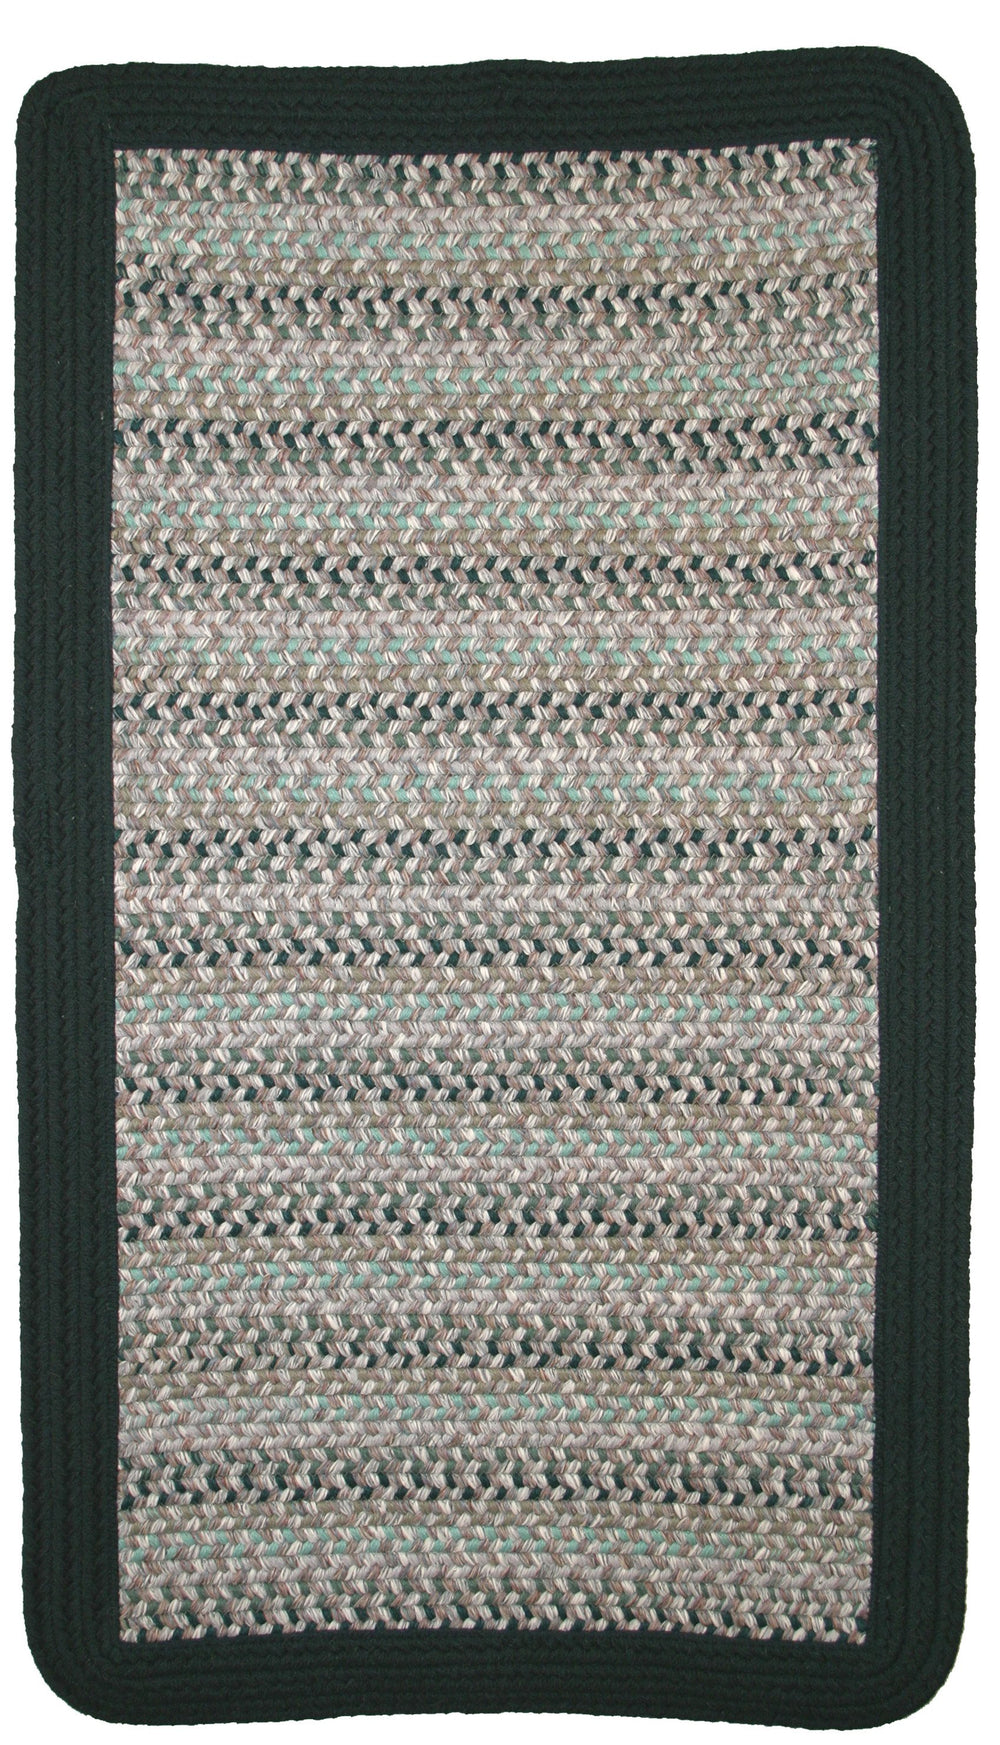 Thorndike Mills Pioneer Valley II Aqua Mist w/DK Green Solids Area Rug